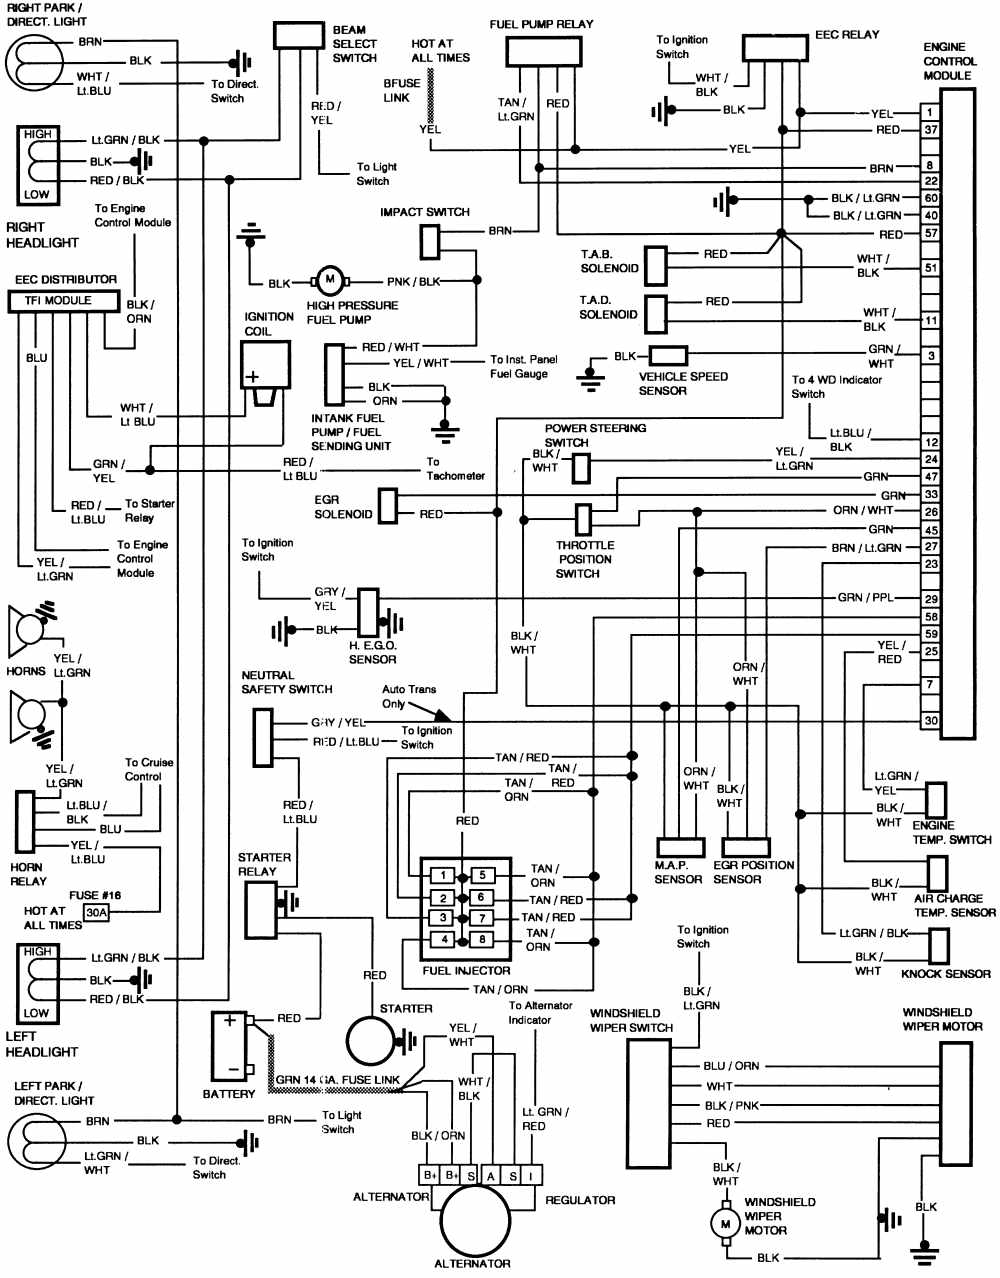 DIAGRAM] Ford F 250 Wiring Diagrams FULL Version HD Quality Wiring Diagrams  - DIAGRAMOFADNS.NUITDEBOUTAIX.FRdiagramofadns.nuitdeboutaix.fr